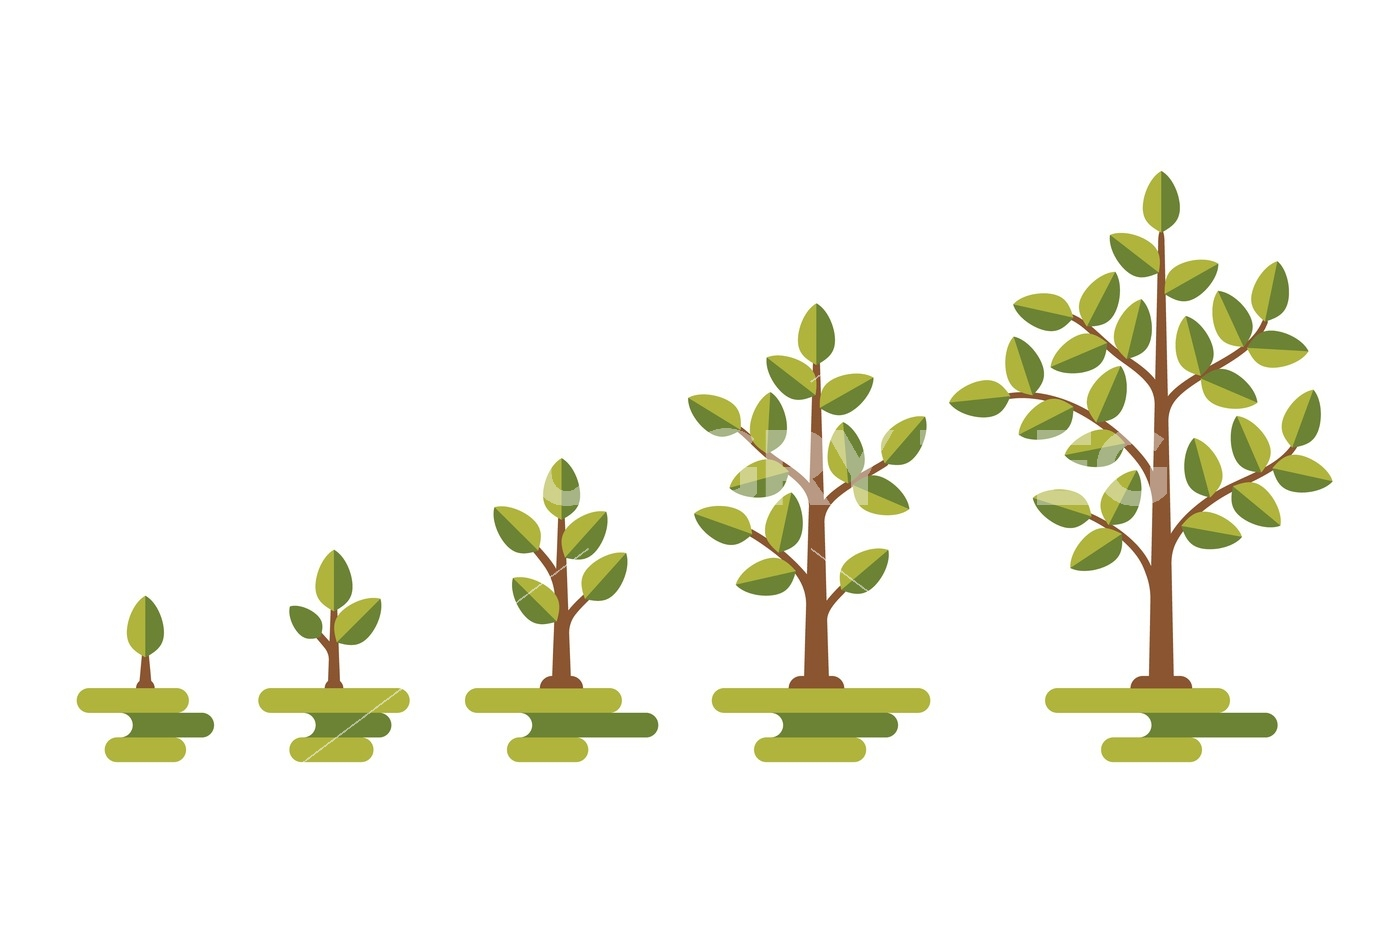 1400x933 Green Tree Growth Vector Diagram By Microvector